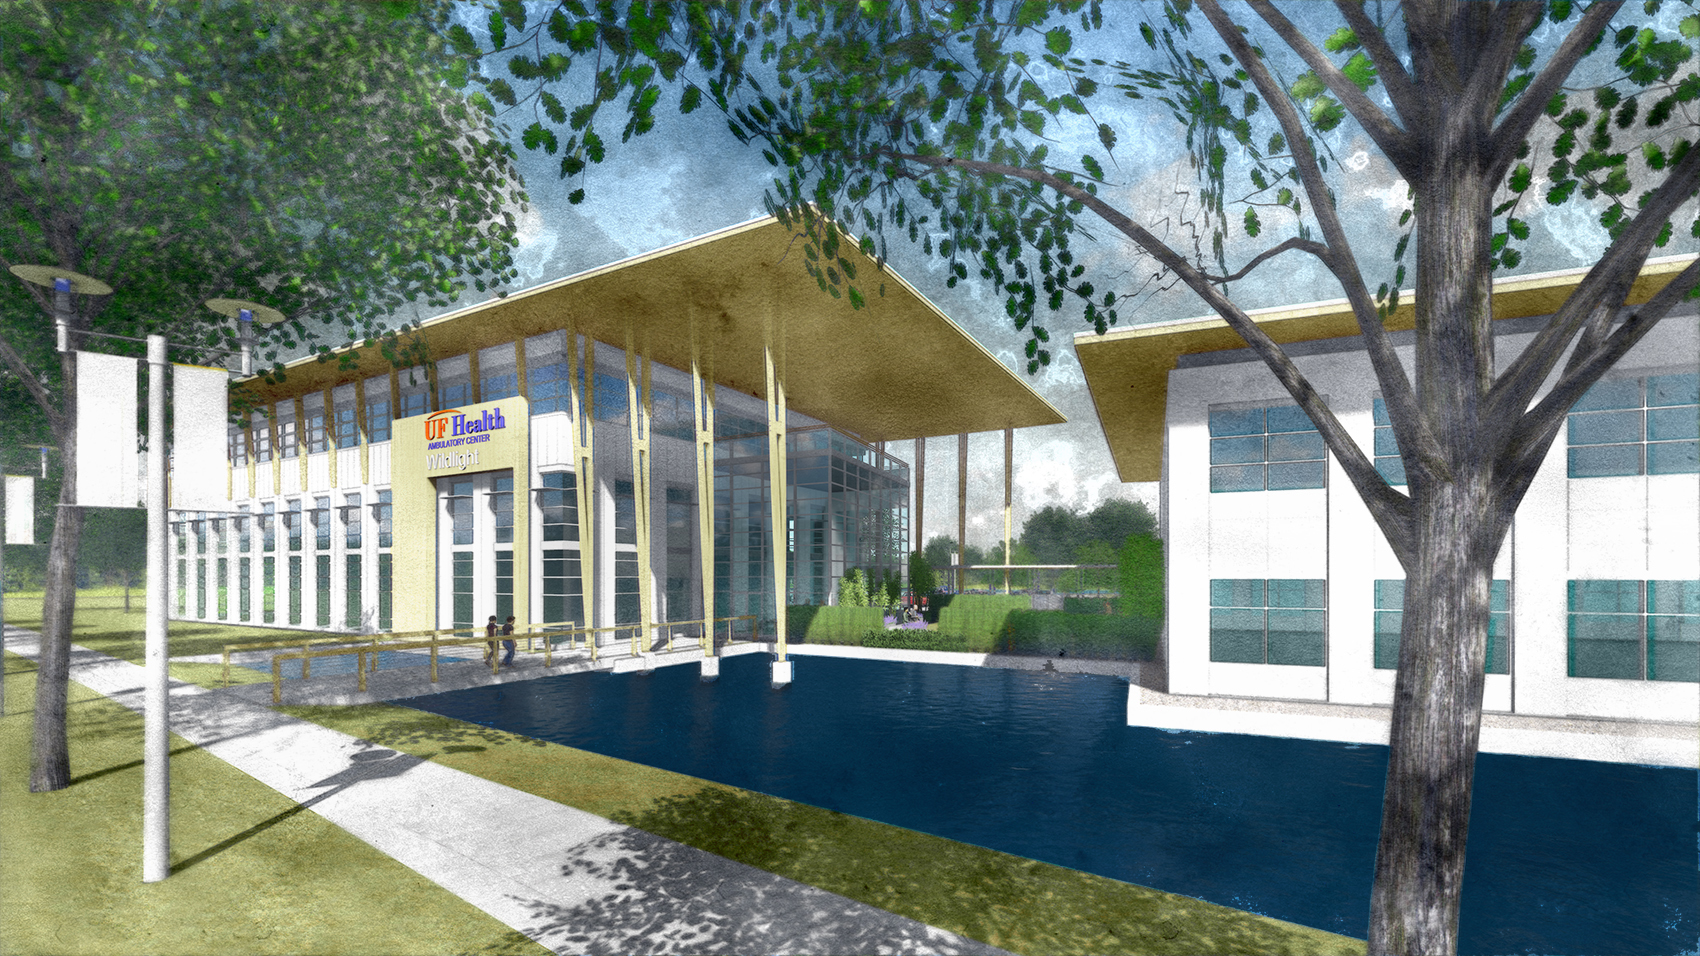 Rendering of Planned UF Health Facilities at Wildlight